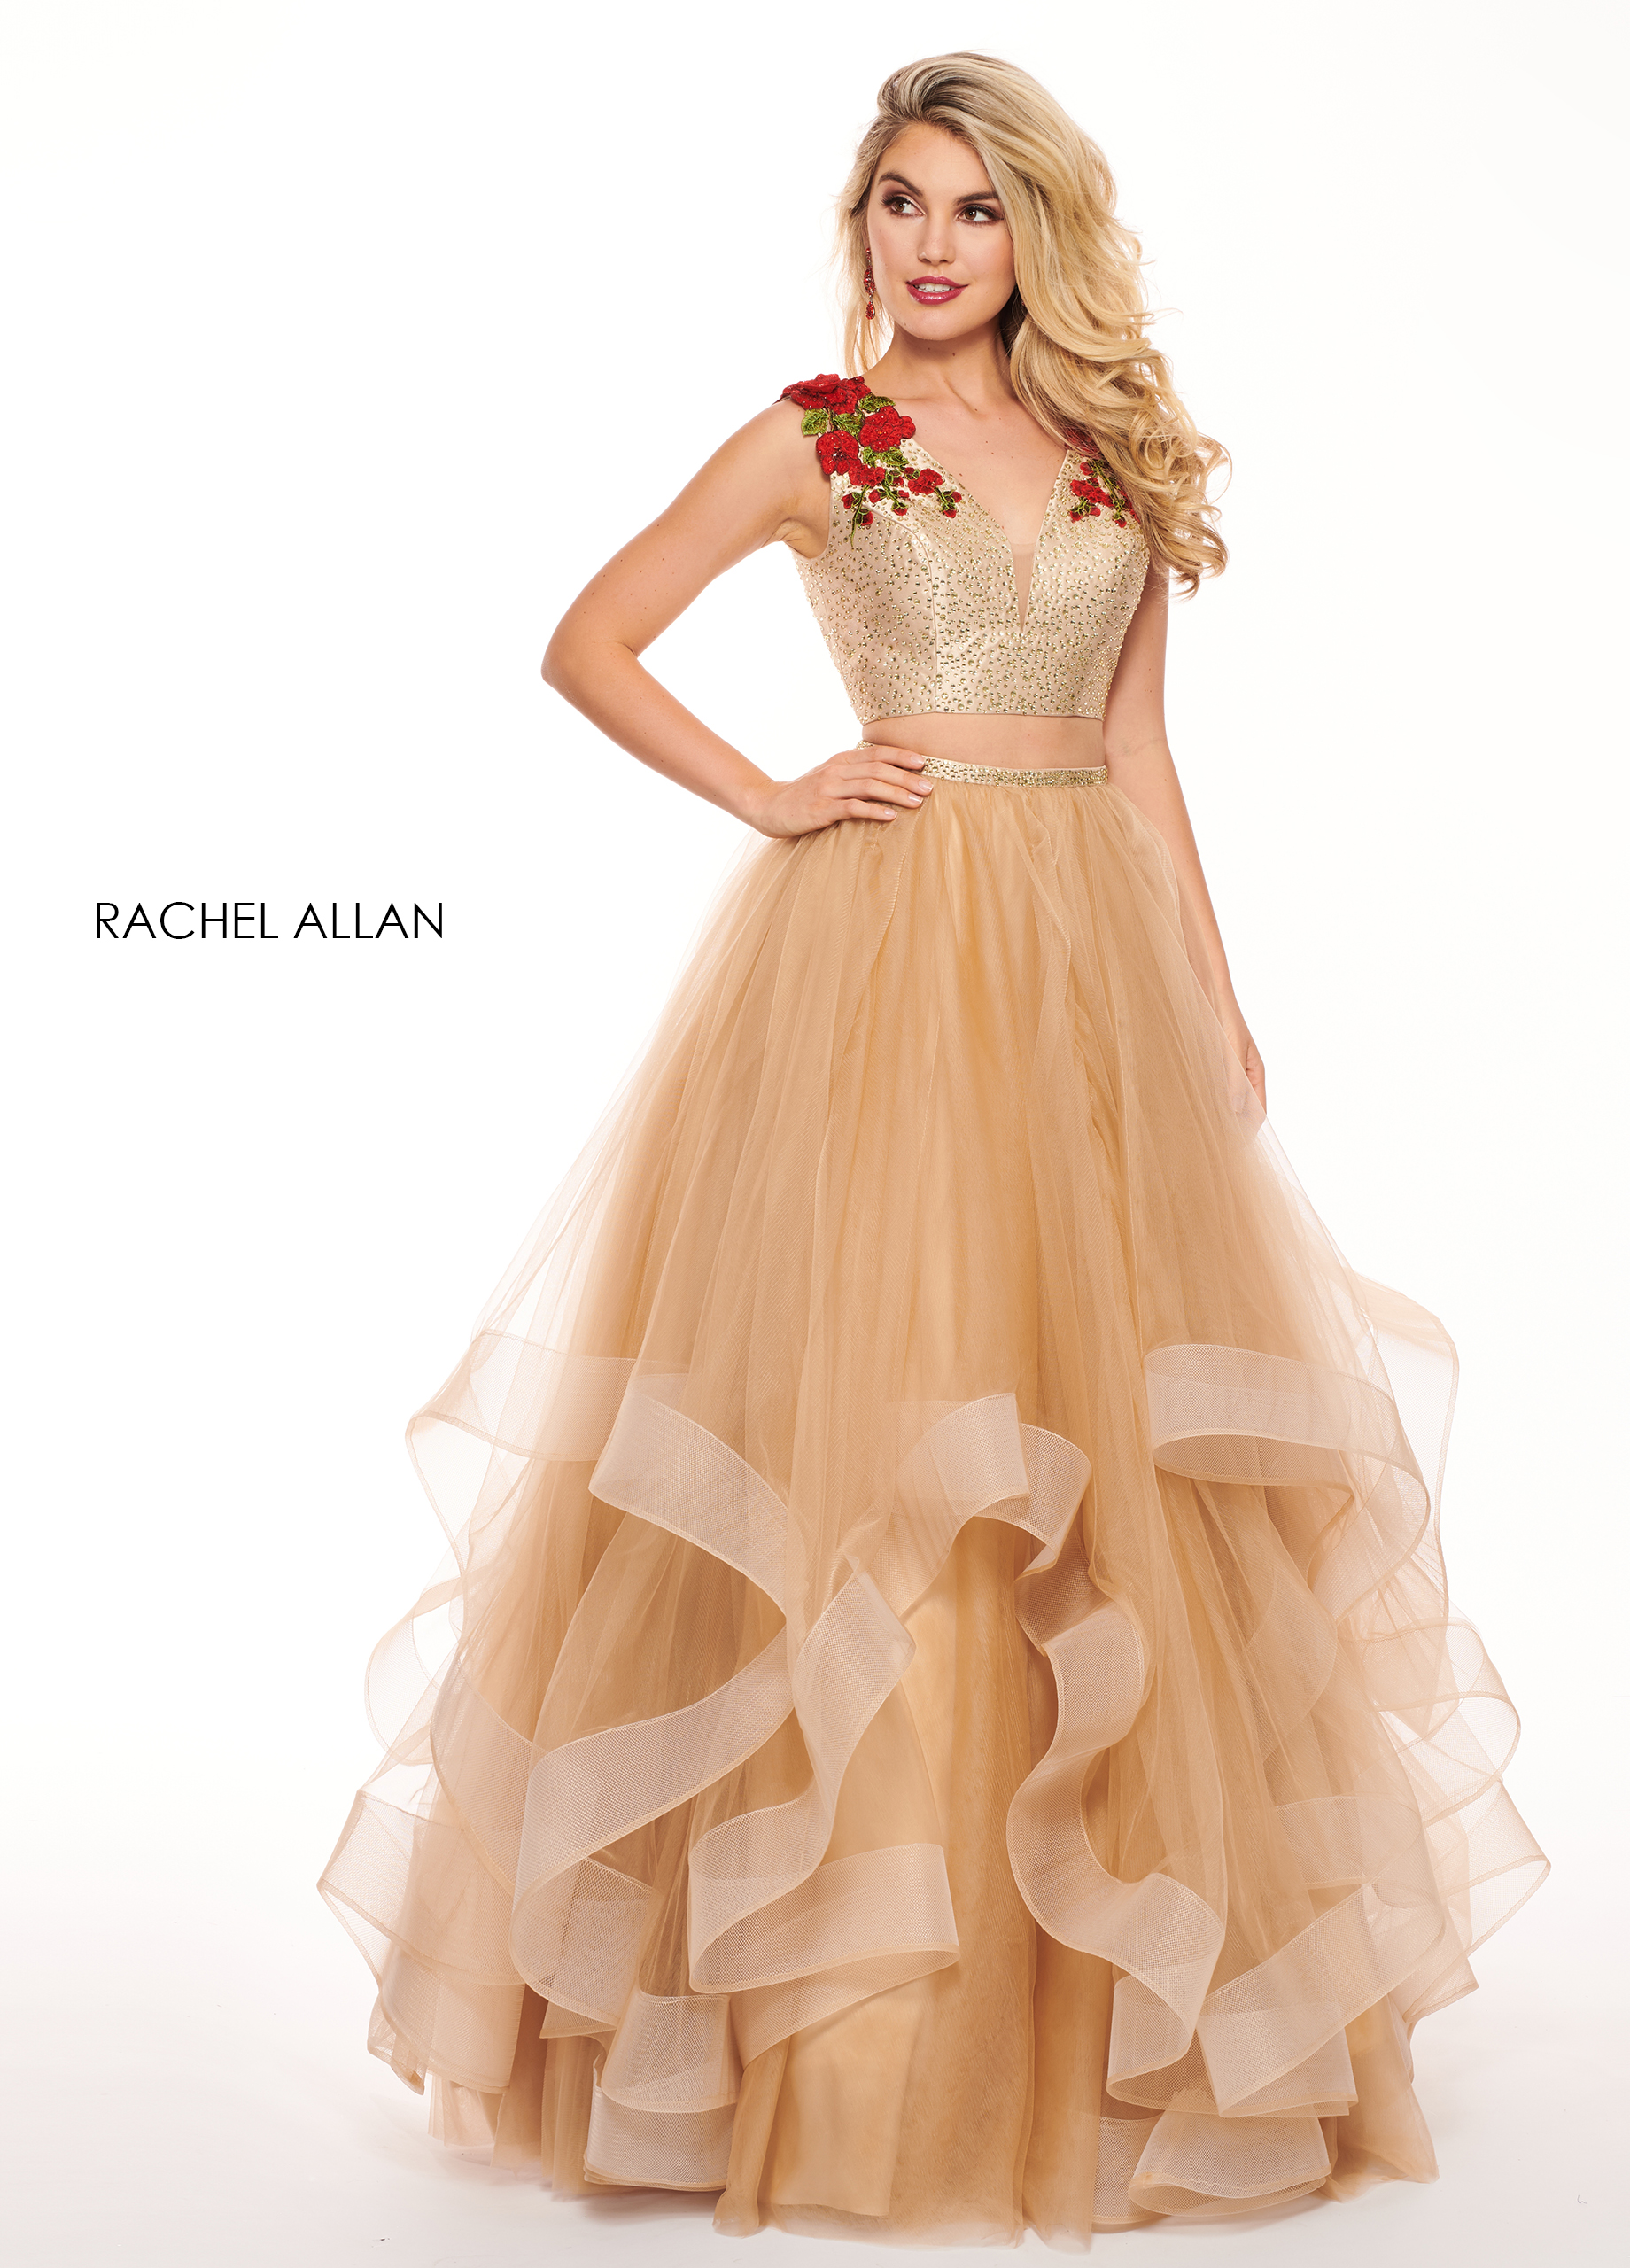 V-Neck Ball Gowns Prom Dresses in Nude Color